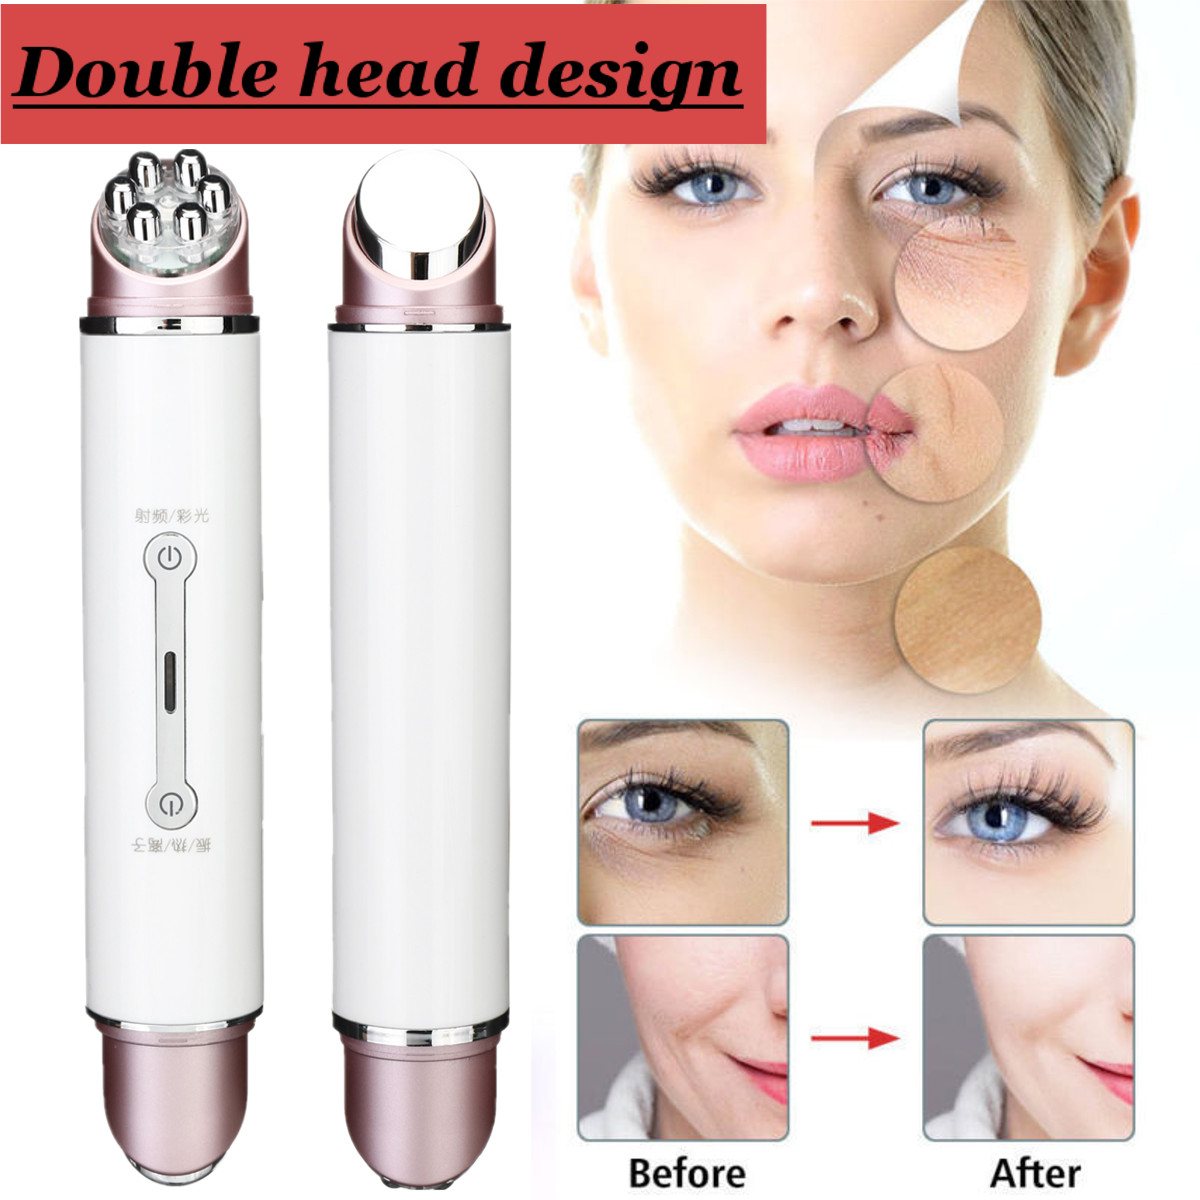 Double Head RF&EMS Radio Mesotherapy Electroporation Face Beauty Pen Frequency LED Photon Face Skin Rejuvenation Remover Wrinkle